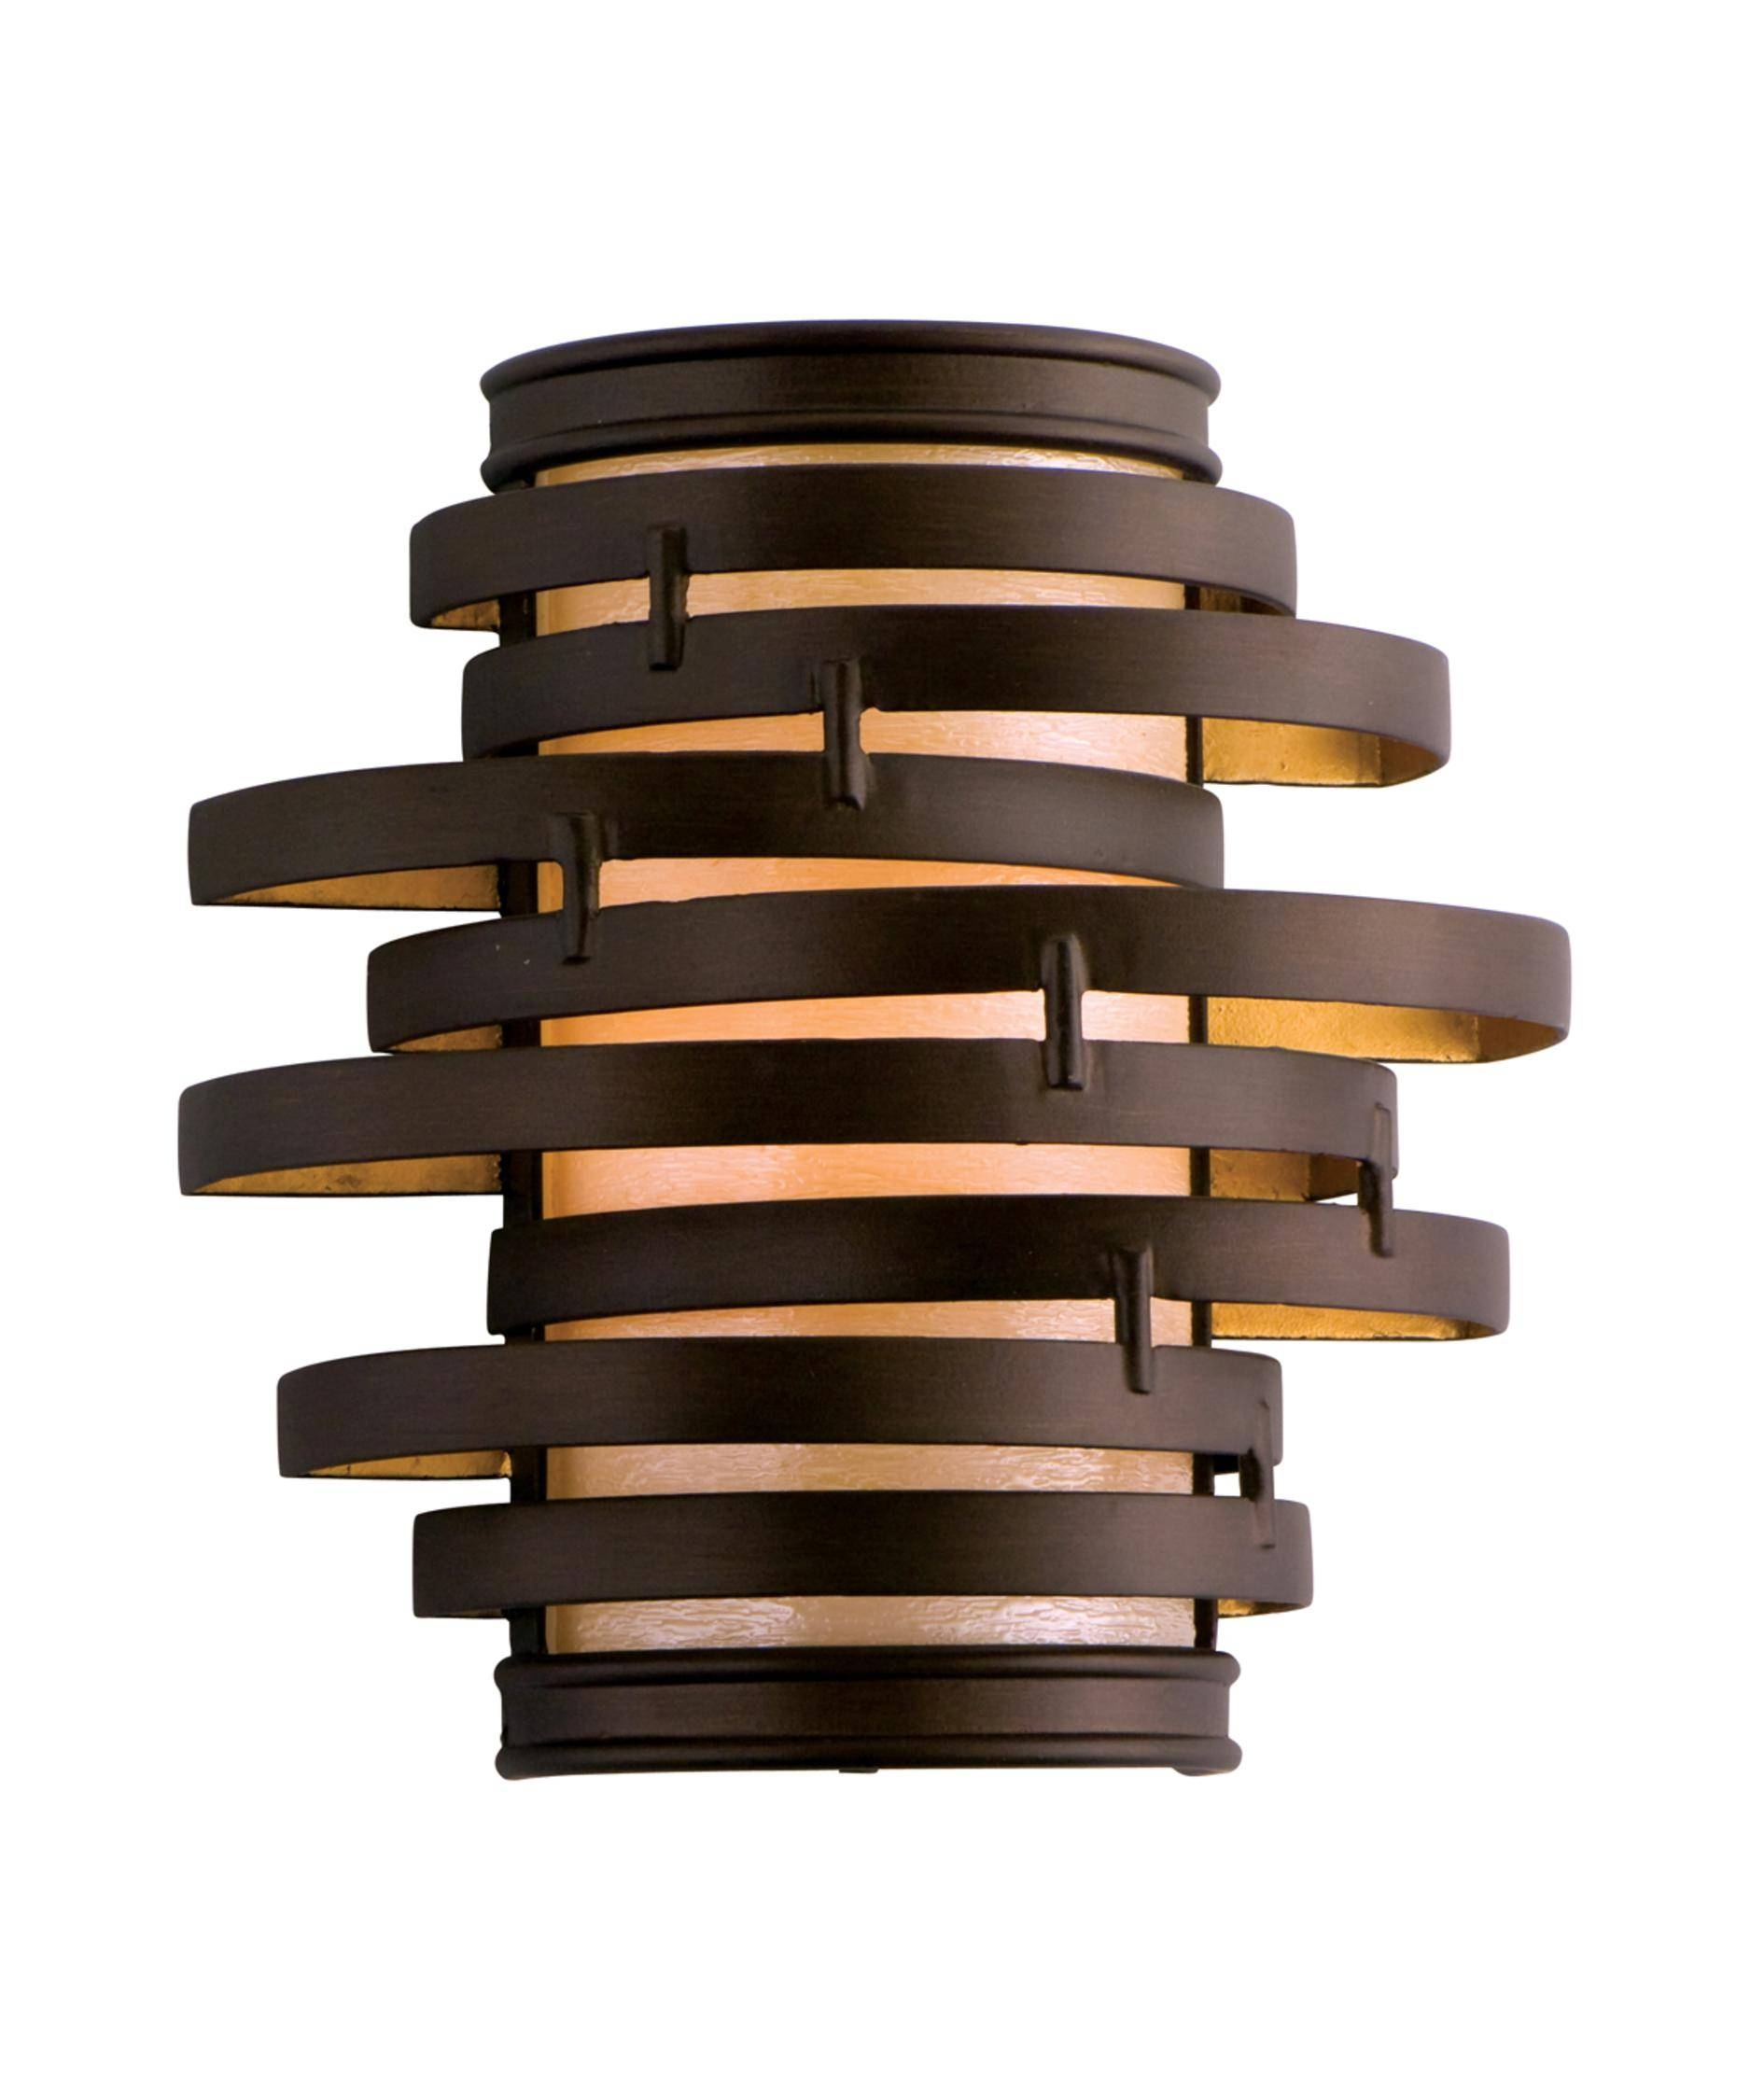 Corbett Lighting Ve-11 Vertigo 10 Inch Wide Wall Sconce | Capitol intended for Corbett Vertigo Small Pendant Lights (Image 10 of 15)